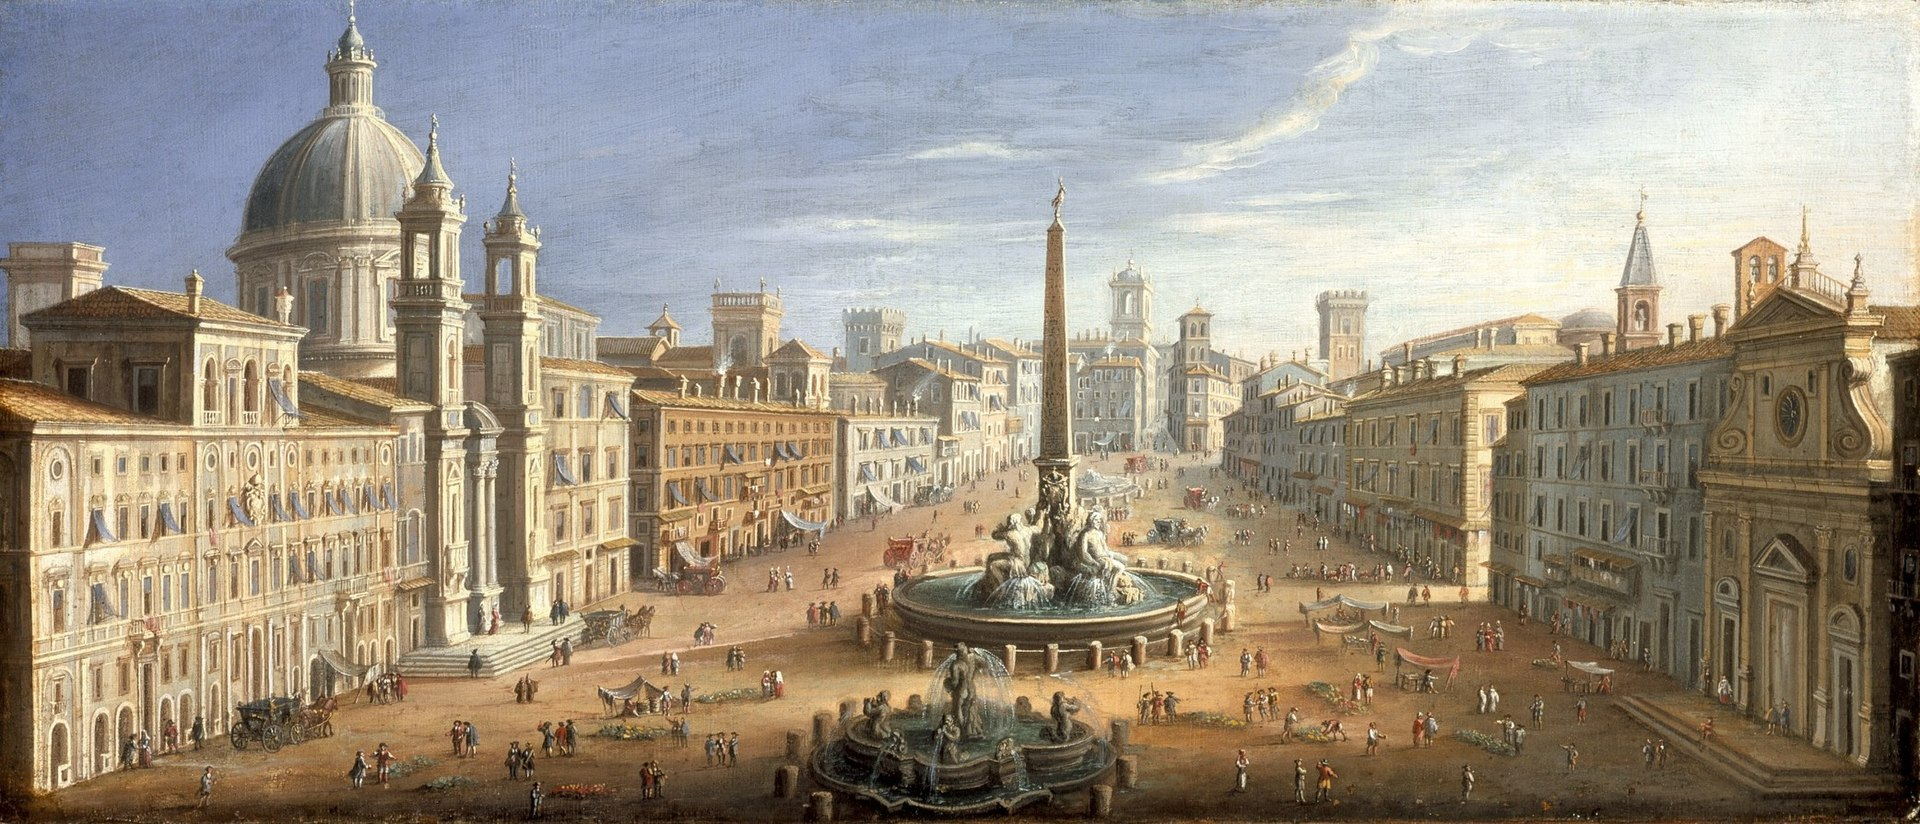 View of the Piazza Navona, Rome LACMA 49.17.3.jpg